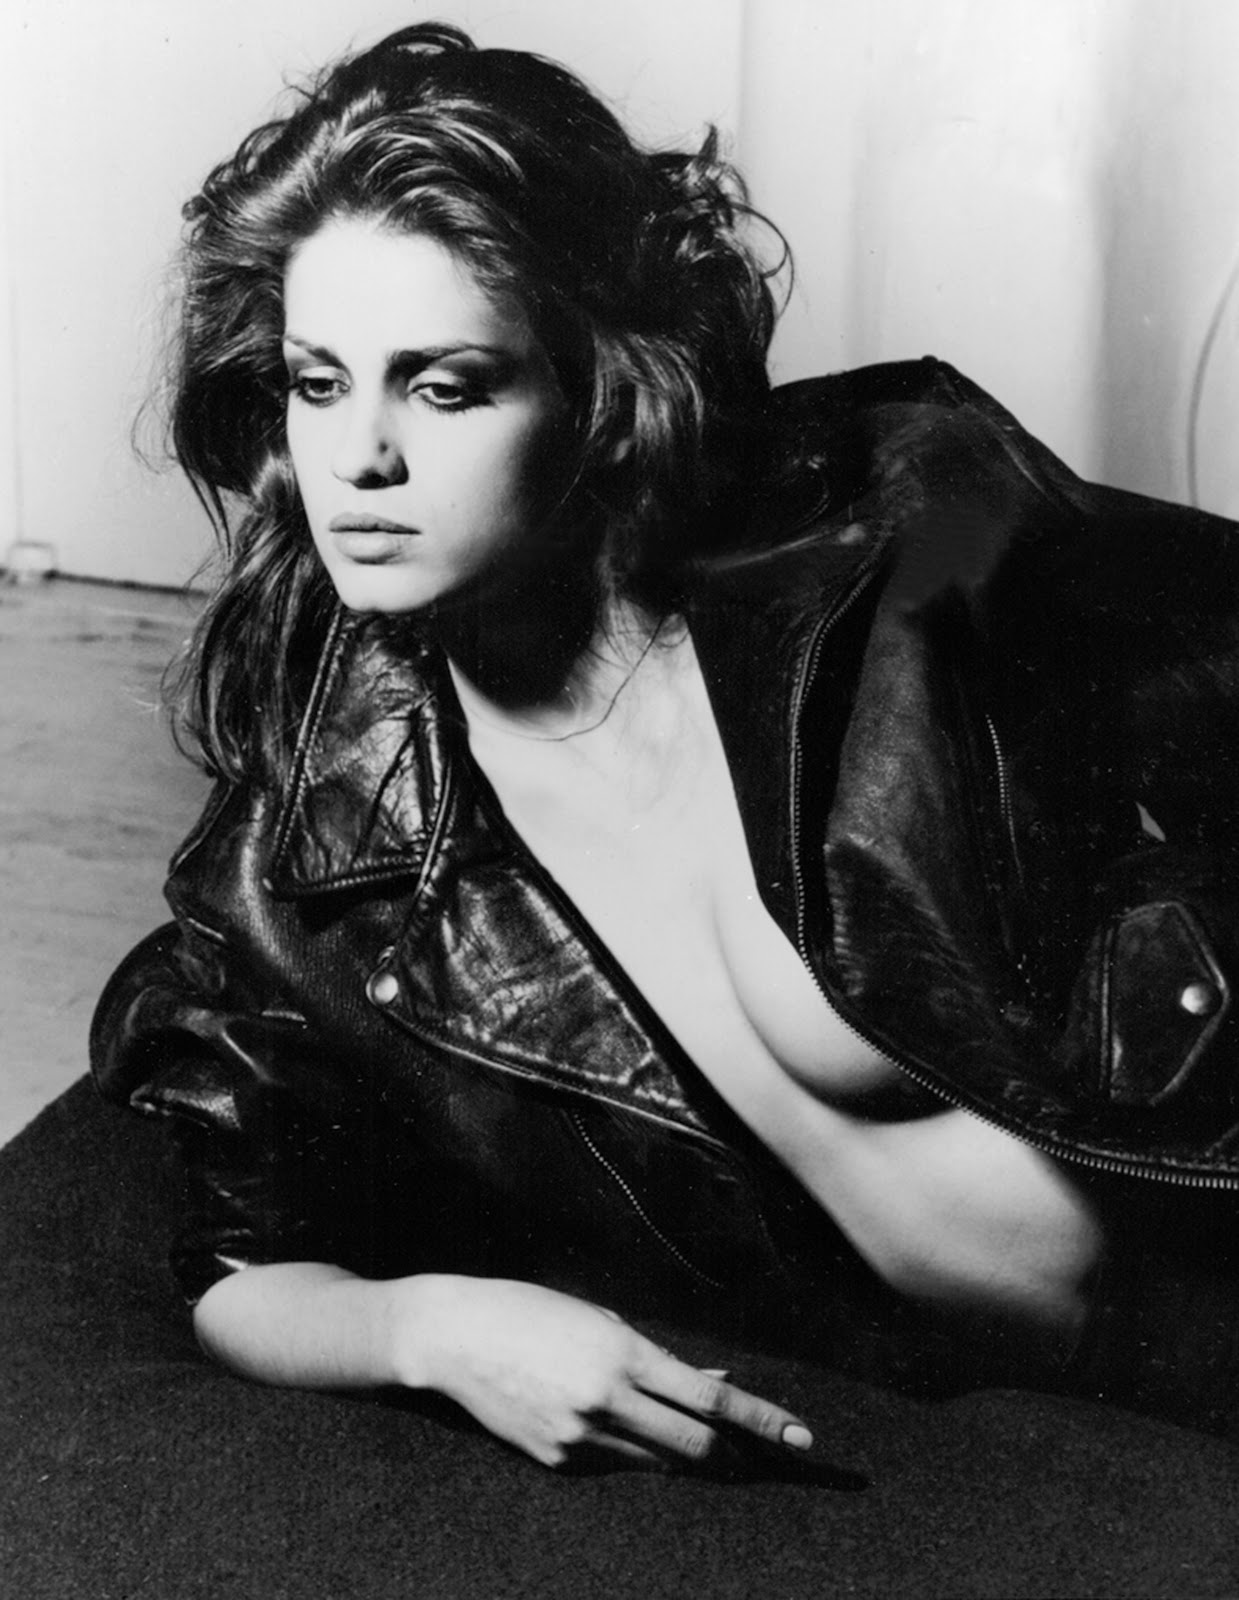 Gia Carangi6 Angelina Jolie nude pictures gallery, nude and sex scenes